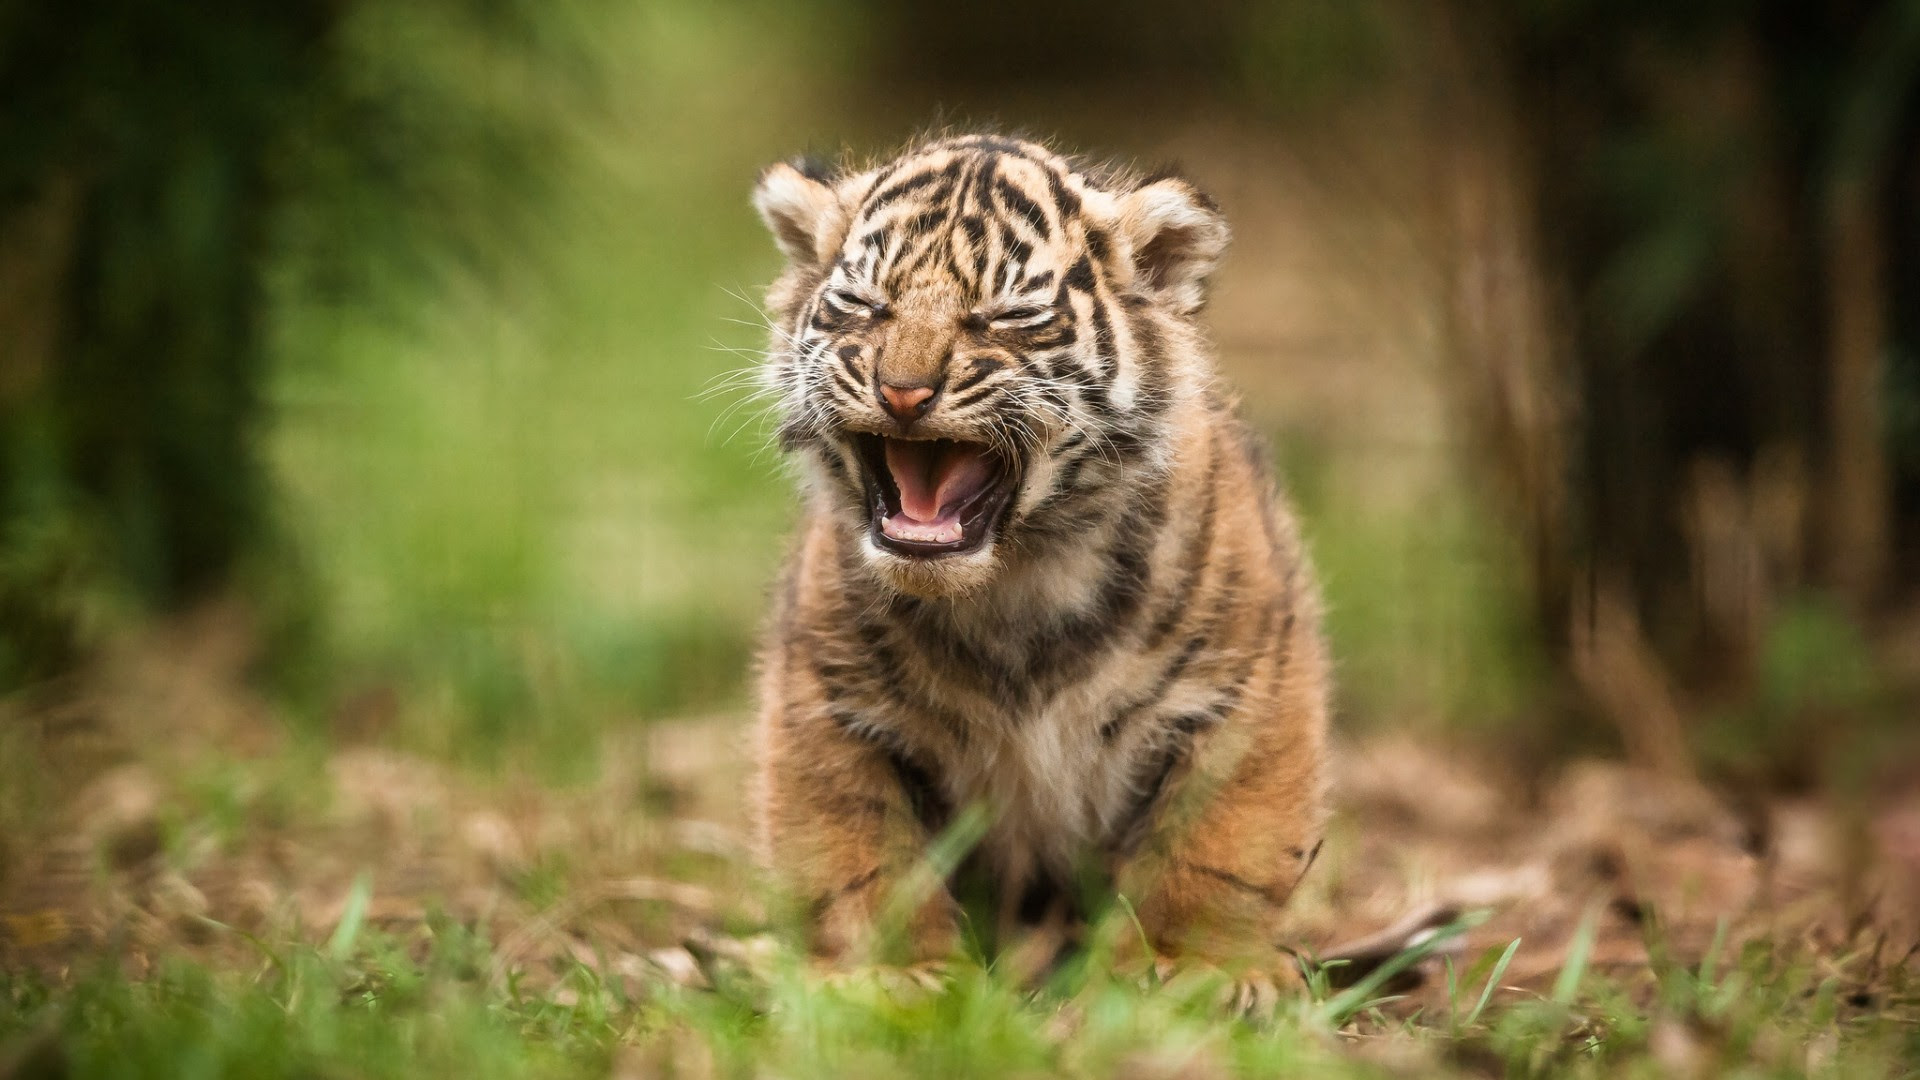 Tiger Wallpaper Download Full Hd